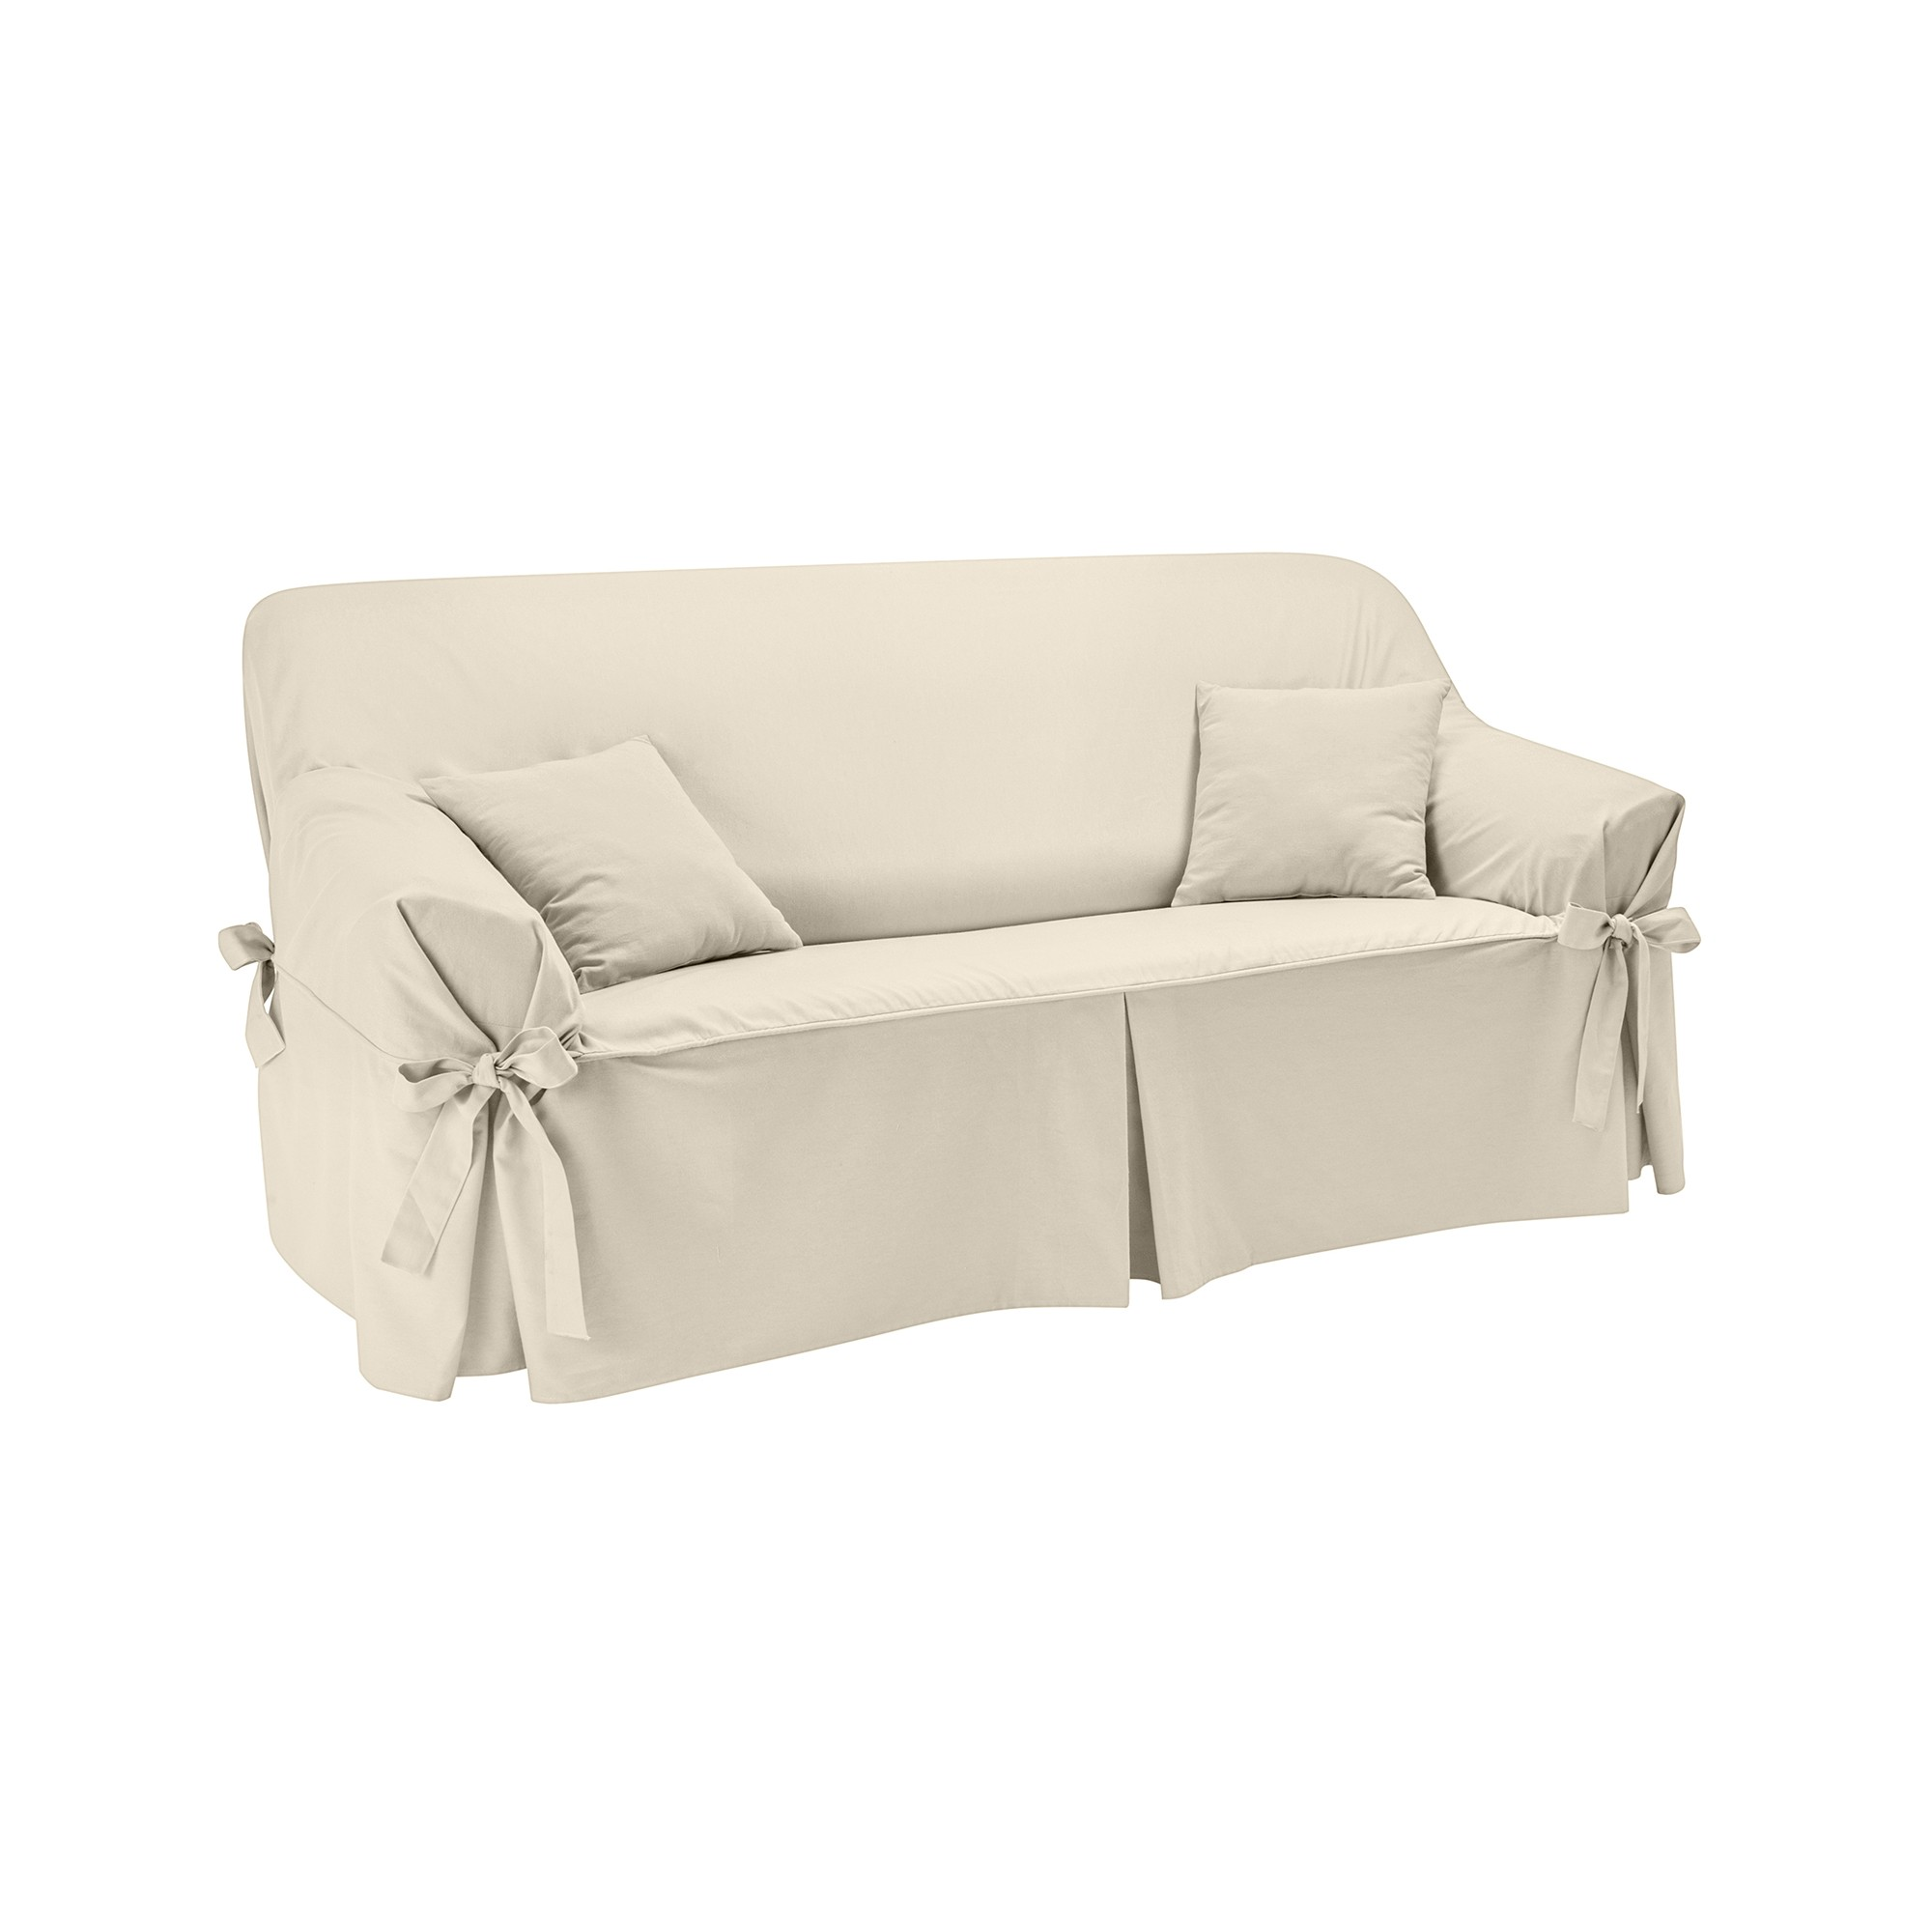 Housse canap nouettes pr form e bachette blancheporte for Housse de canape 4 places